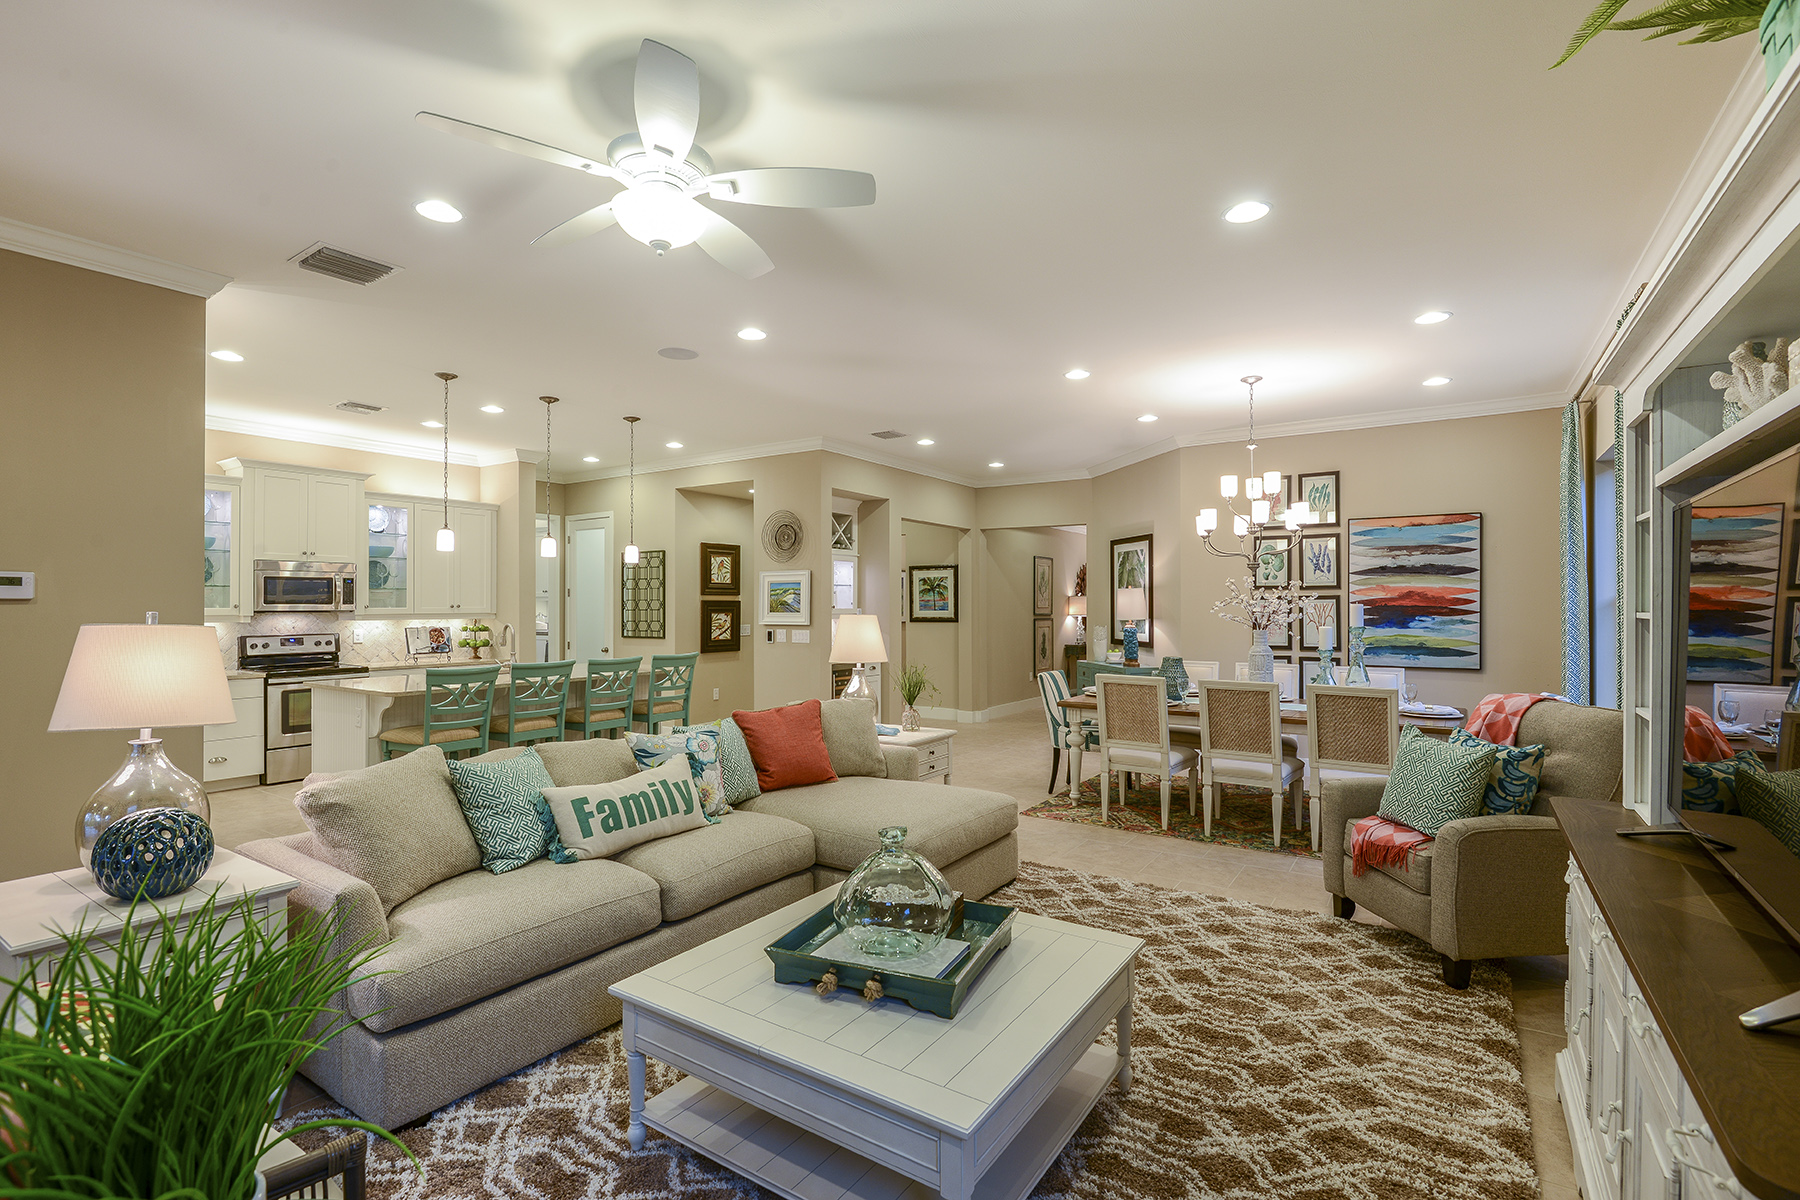 Banyan Plan Greatroom at Compass Landing in Naples Florida by Mattamy Homes